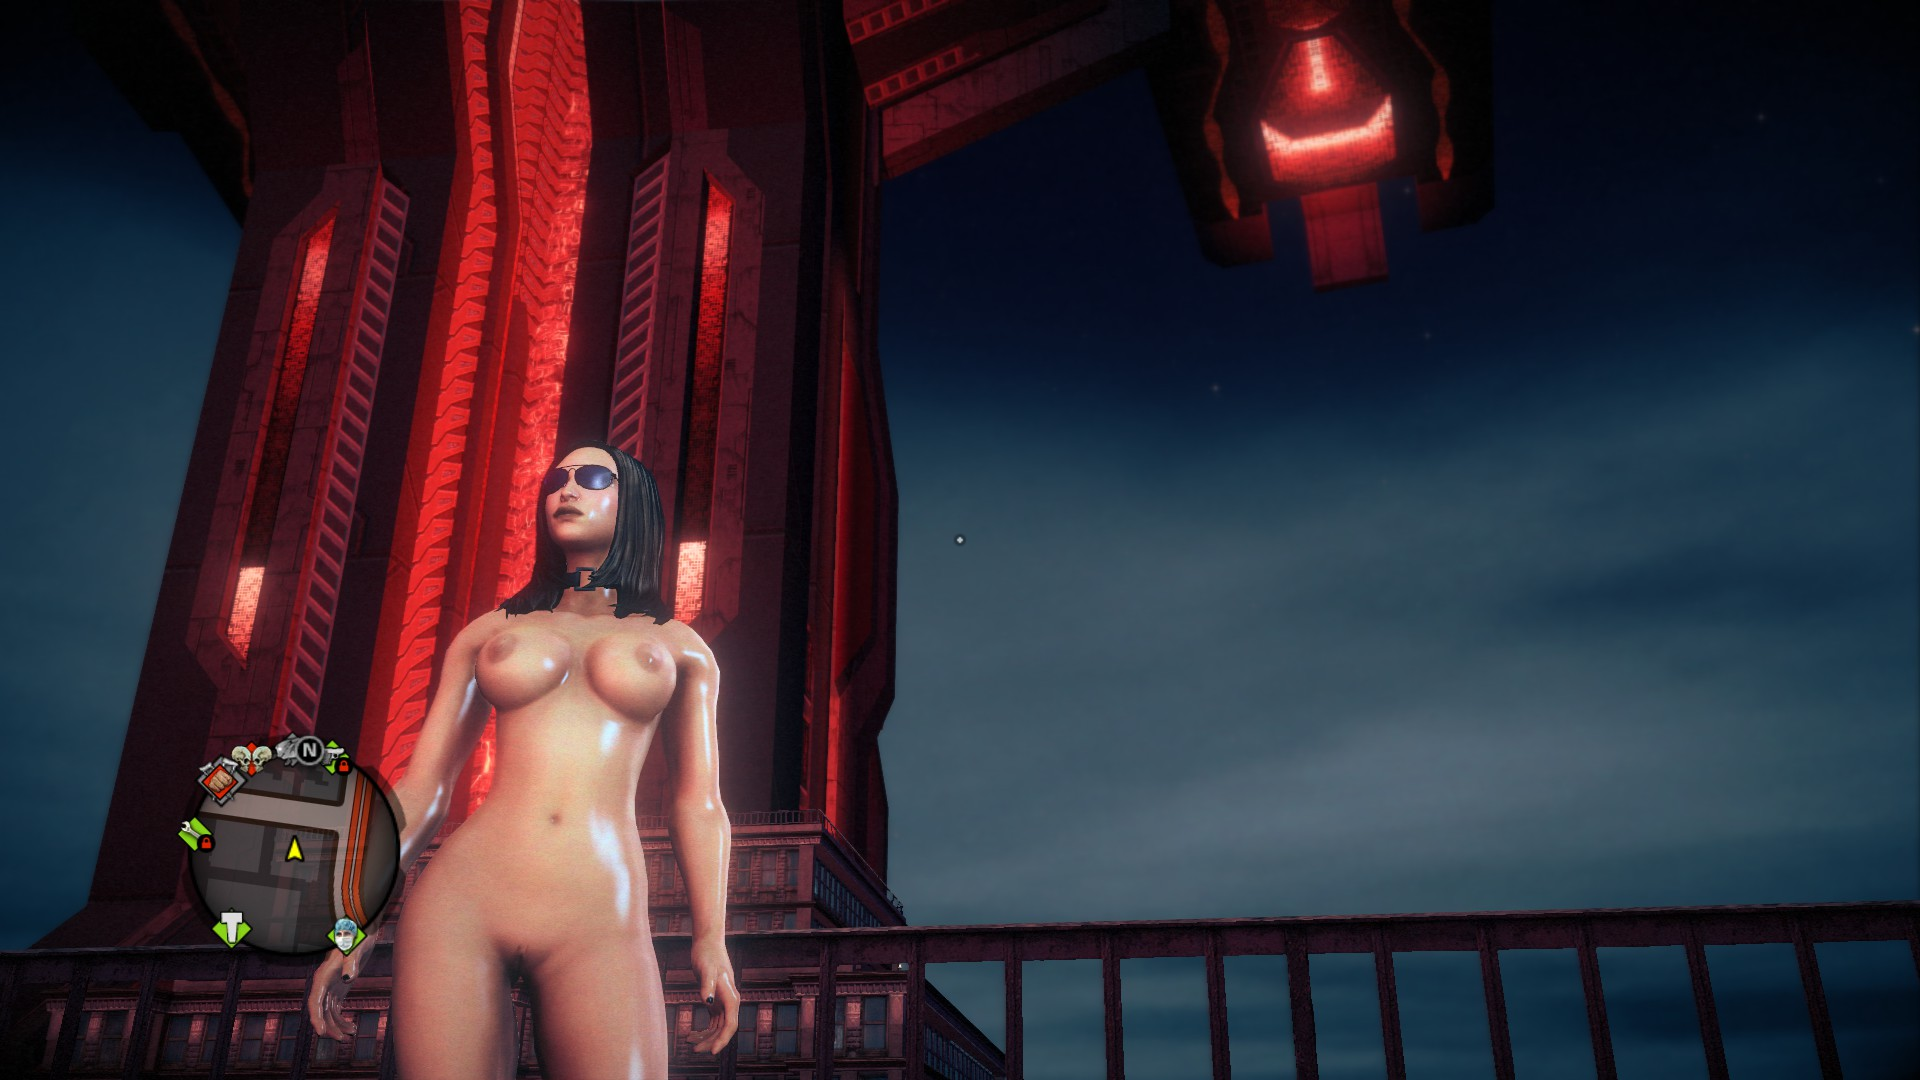 Saint s row 4 nude patch erotic movies